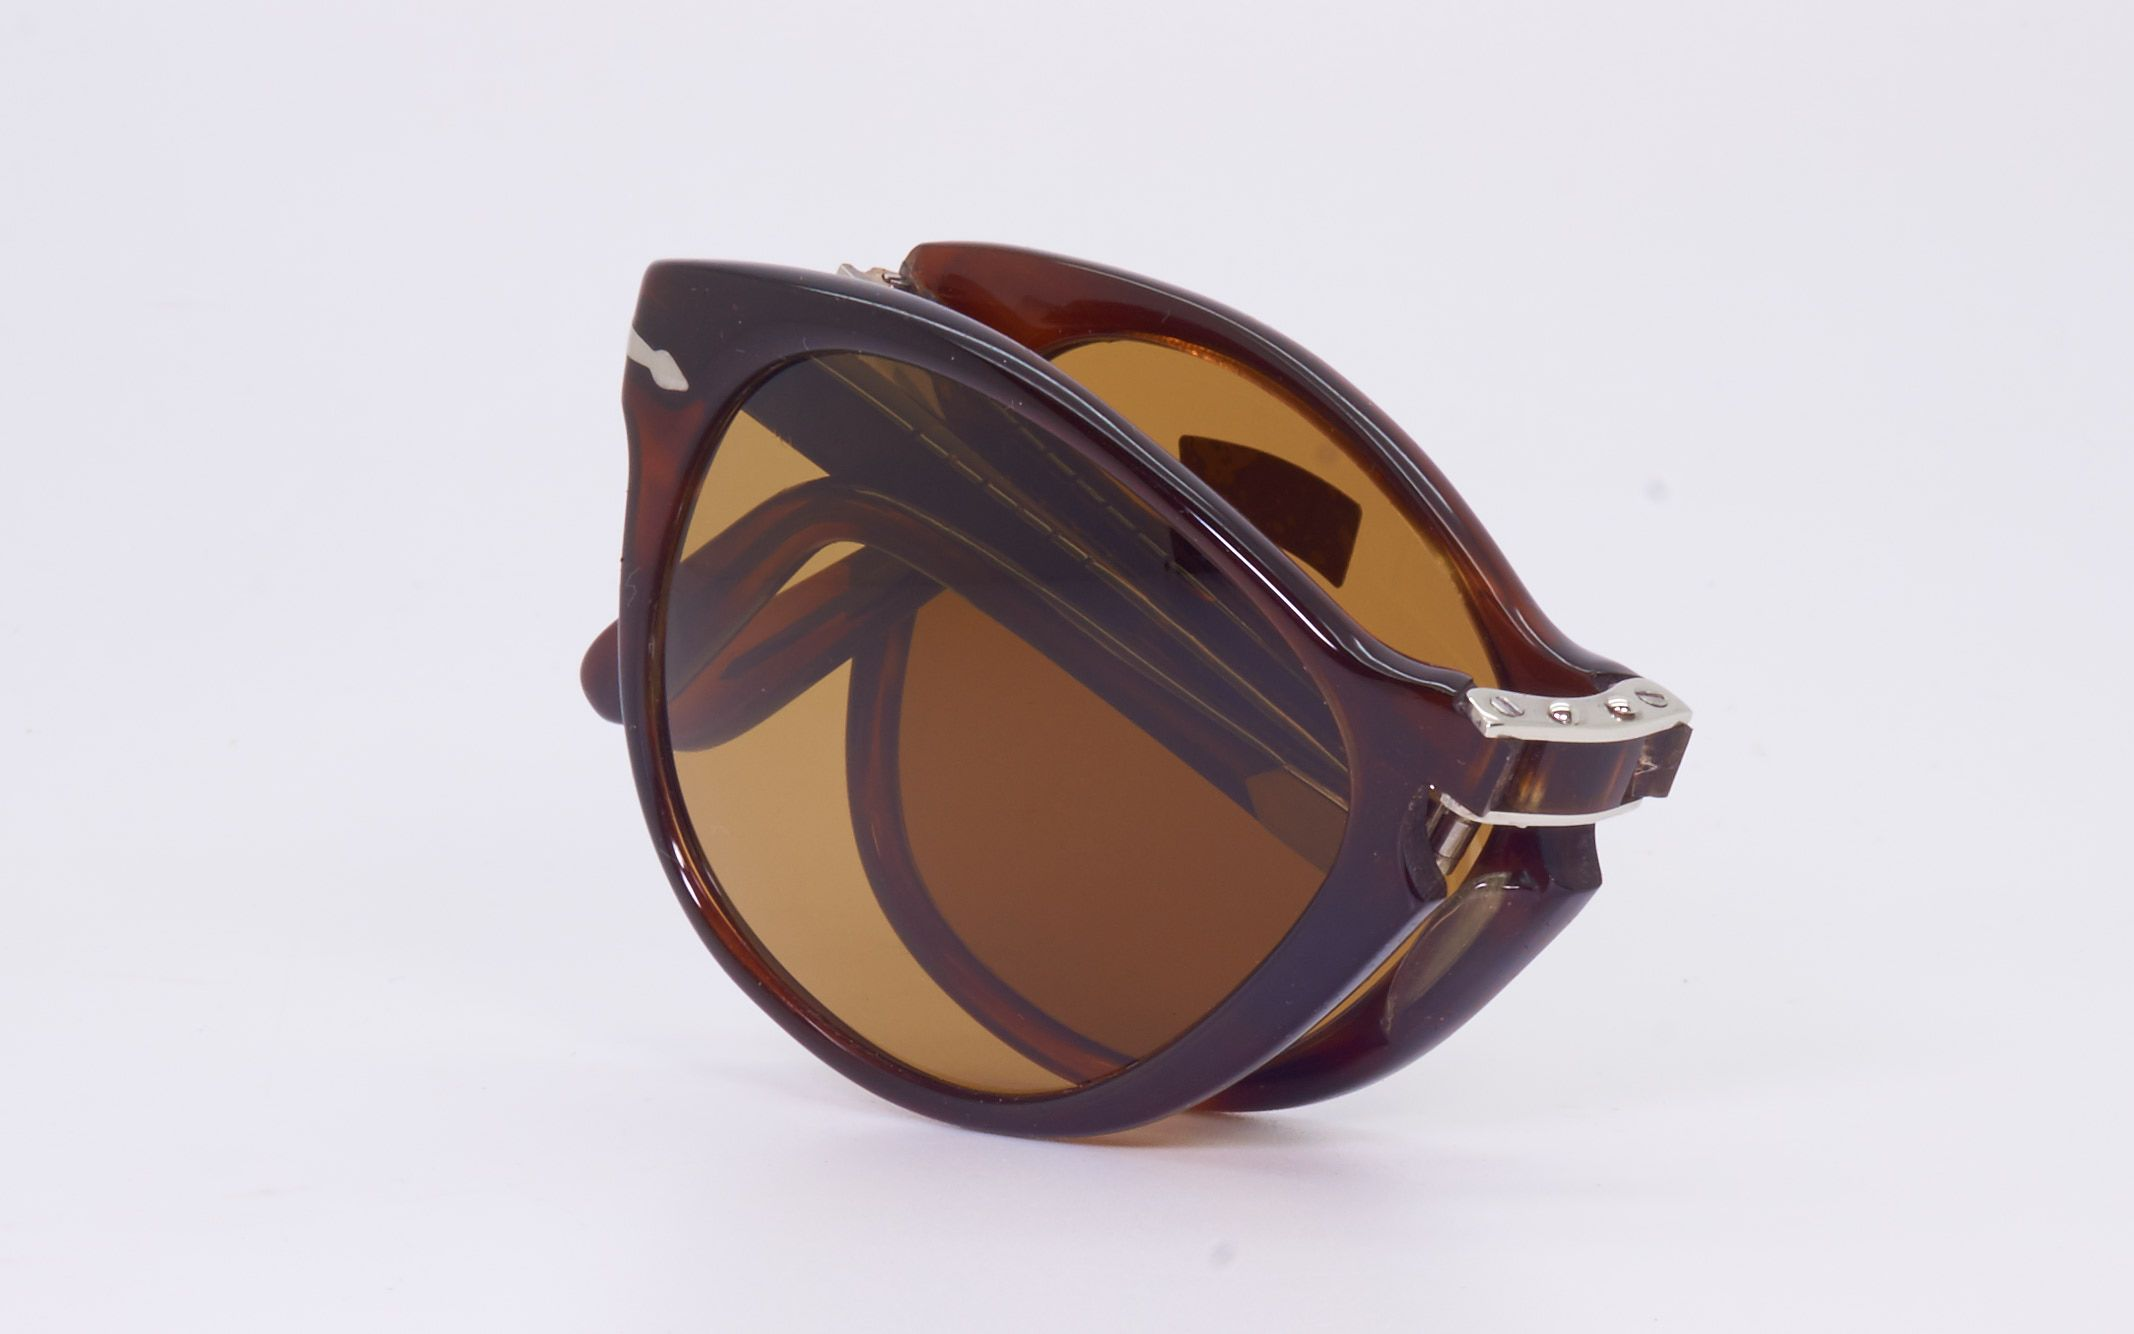 949d9e557da5 When it comes to iconic sunglasses the Persol Ratti 714 has to be towards  the top Made infamous by Steve Mcqueen in the cult 1968 film The Thomas  Crown ...